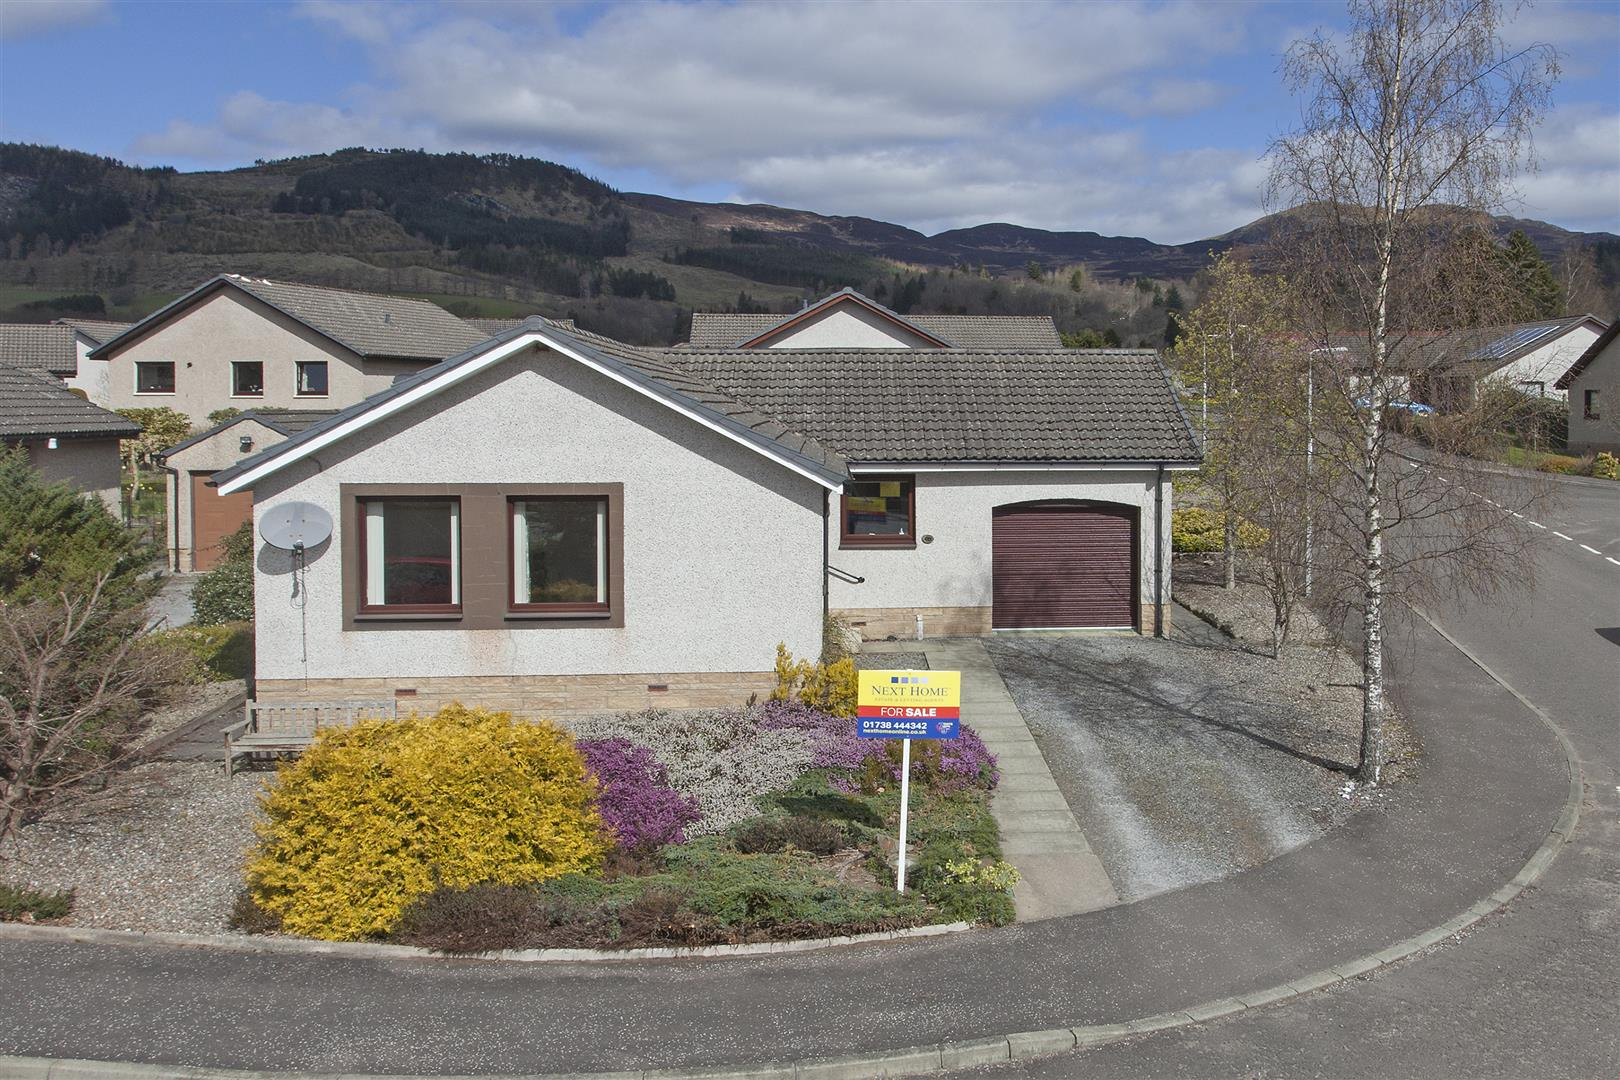 24, Knockard Place, Pitlochry, Perthshire, PH16 5JF, UK